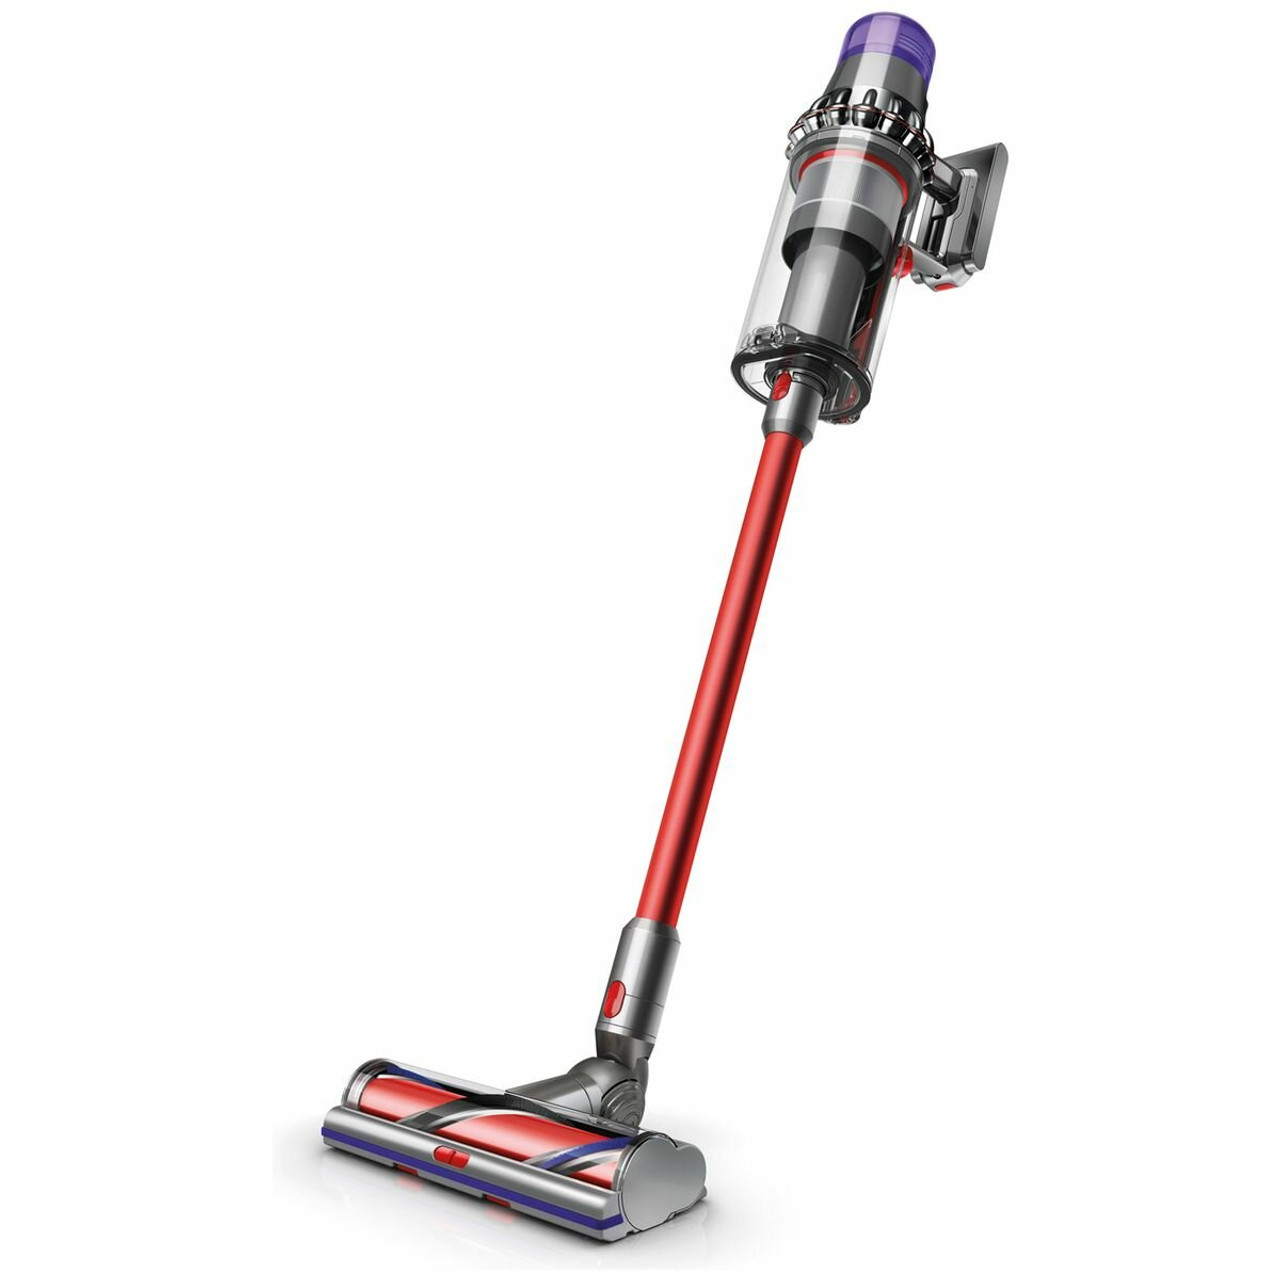 Dyson 371093-01 V11 Outsize Total Clean Cordless Stick Vacuum Cleaner